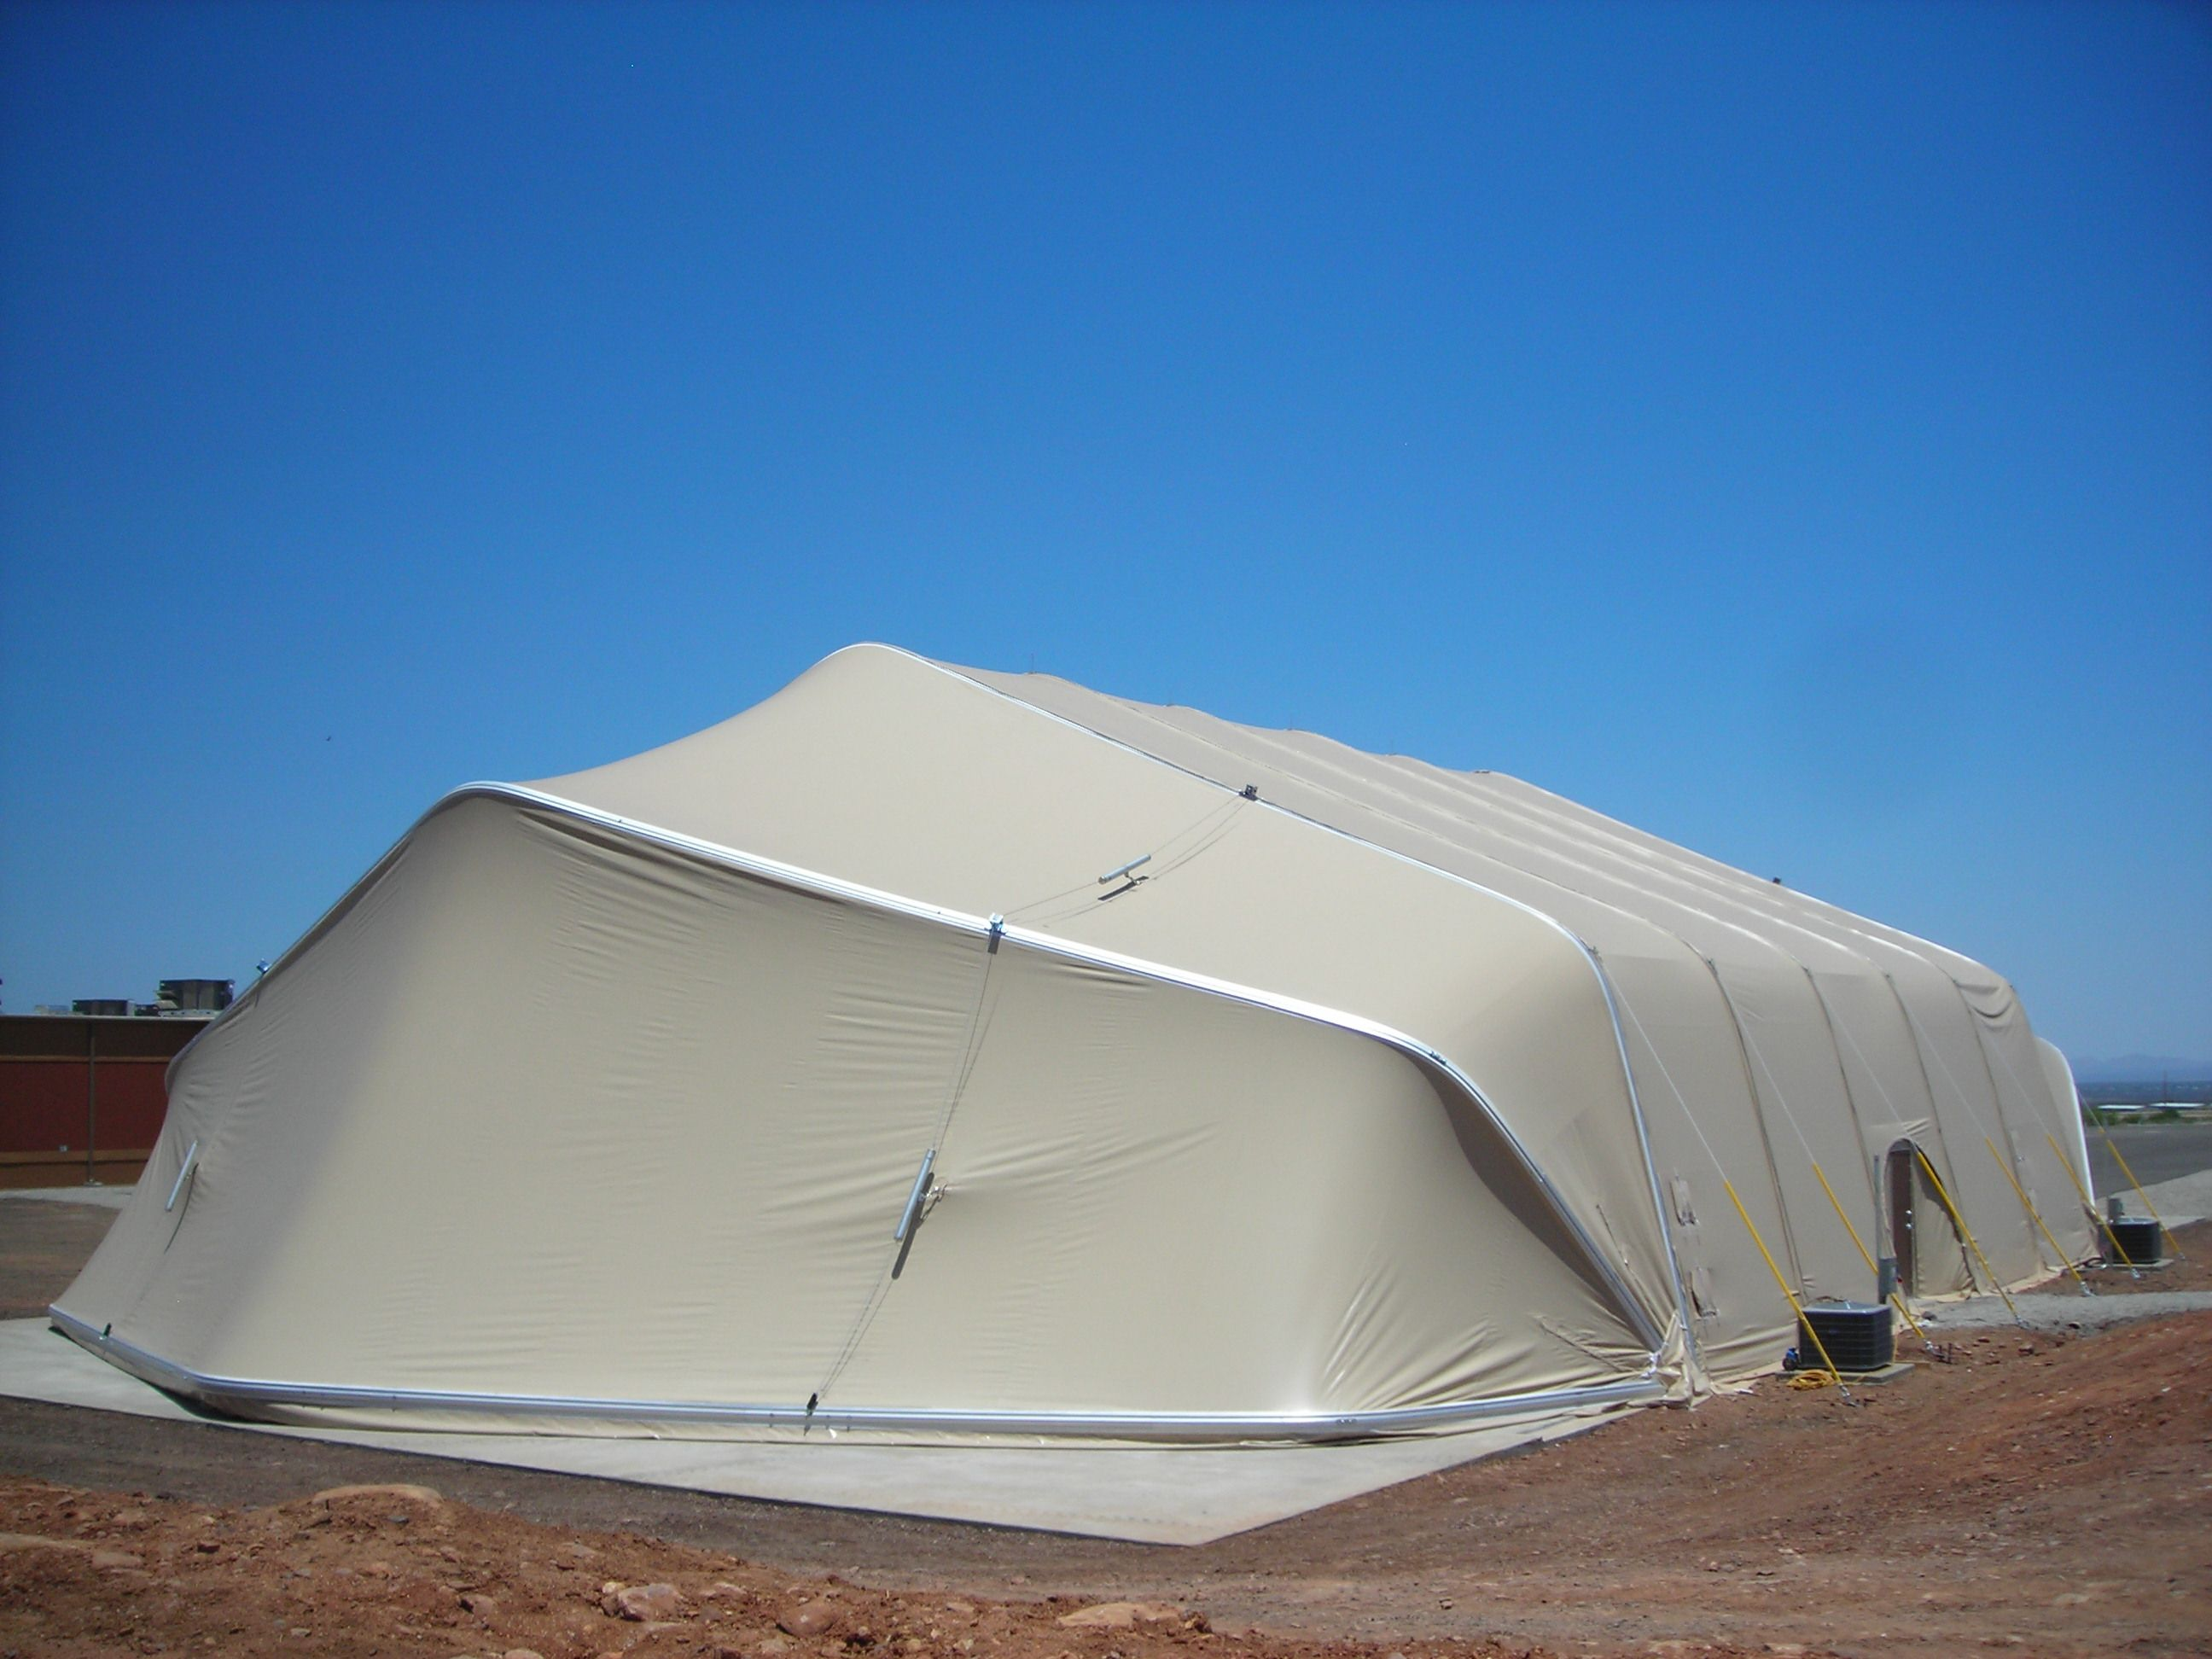 6f65af81c21fc5350e775bb761f23576.jpg & Large Area Maintenance Shelters (LAMS) no foundation required ...